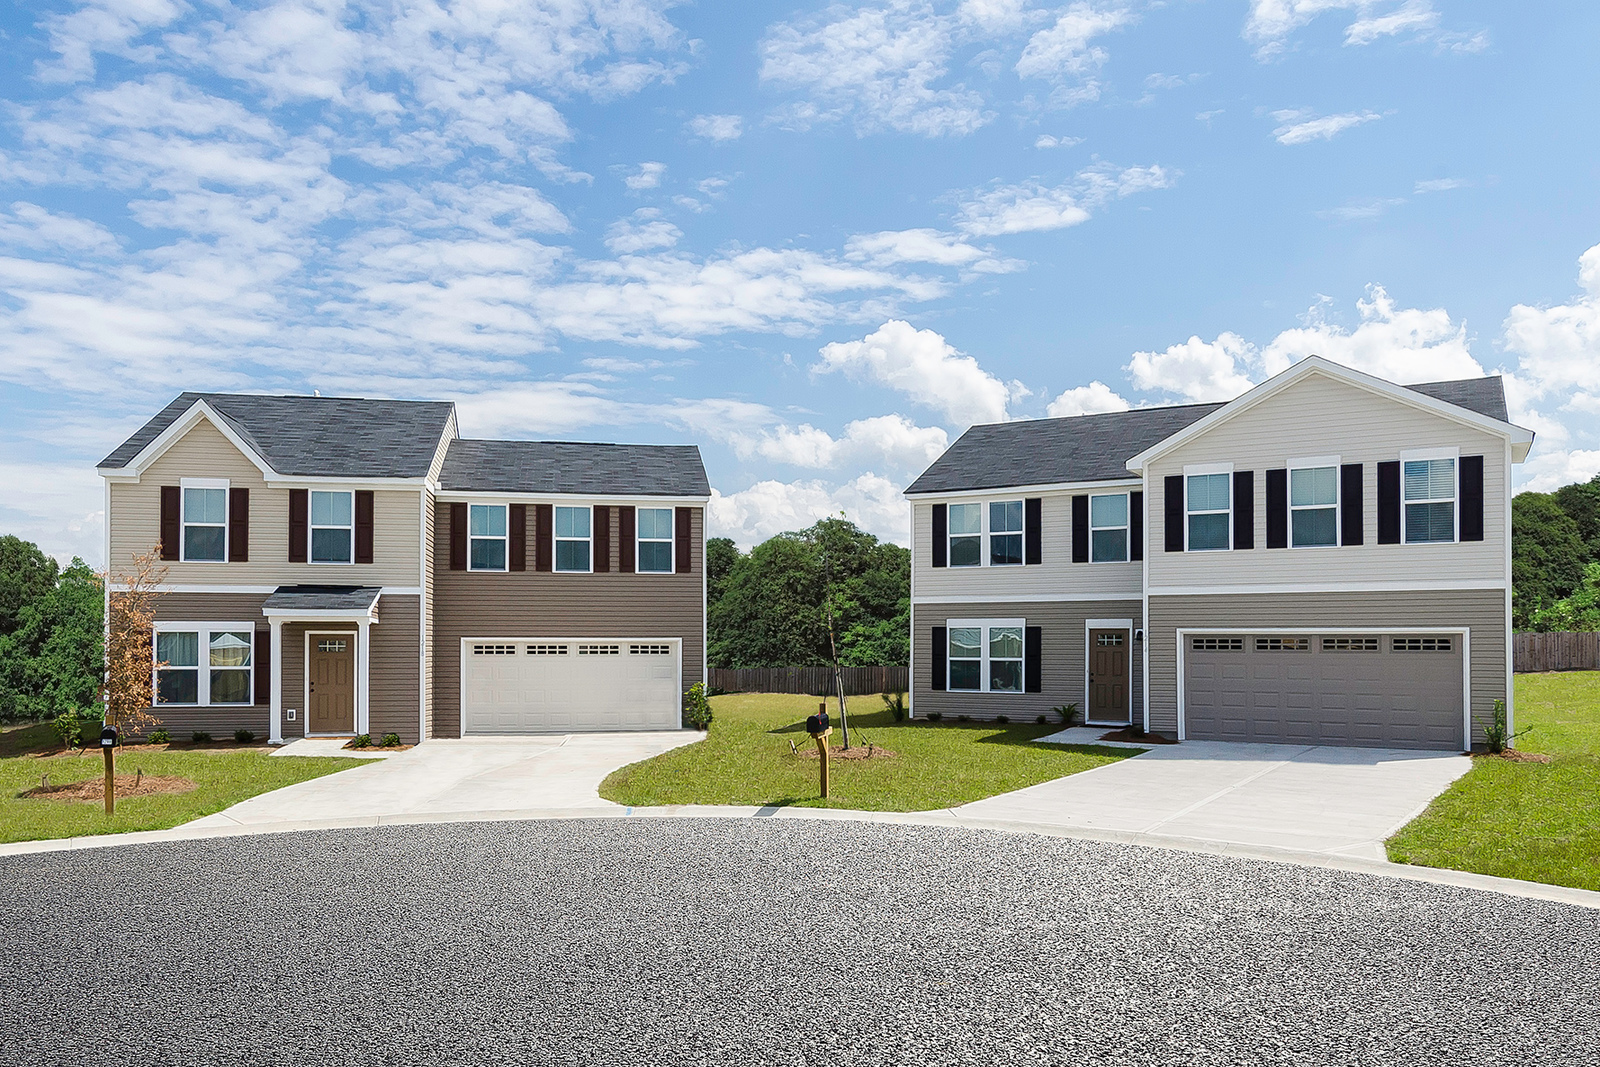 New Homes for sale at Ridgeview in Lexington, SC within the